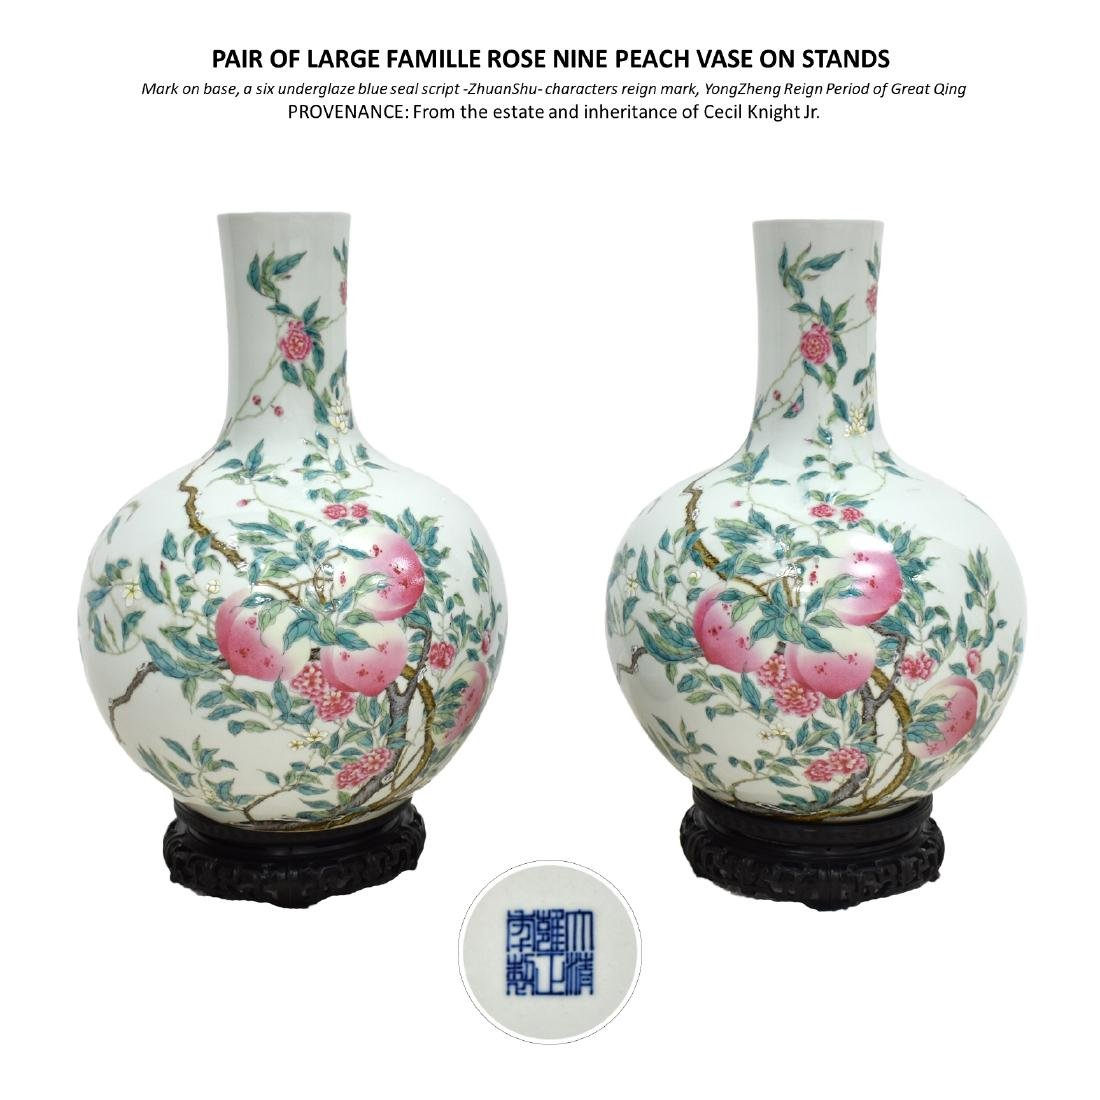 PAIR OF LARGE FAMILLE ROSE NINE PEACH VASE ON STANDS